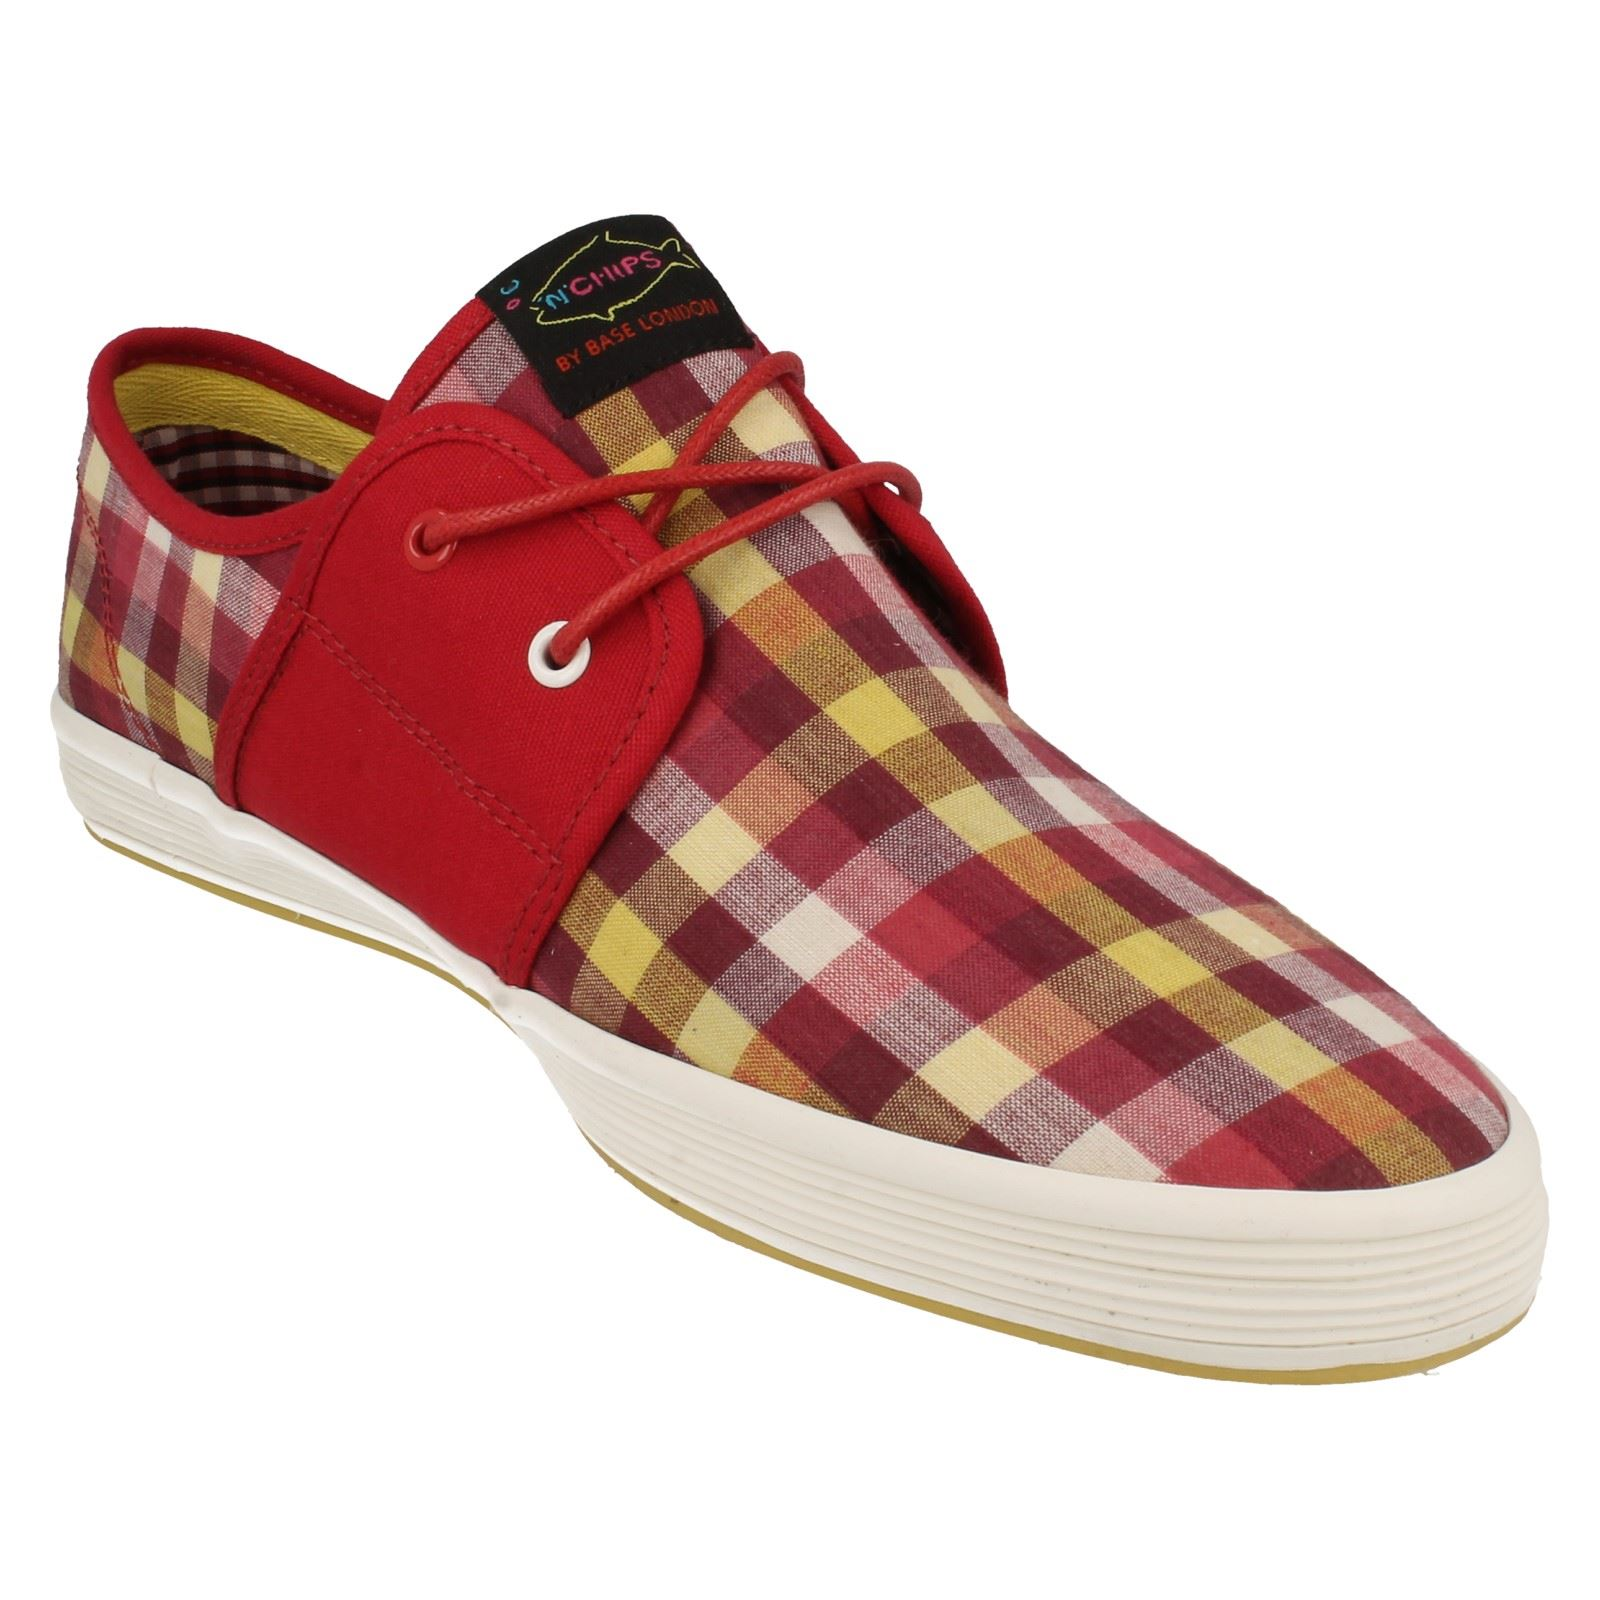 Mens fish n chips by base london casual shoes spam2 ebay for Shoes with fish in them